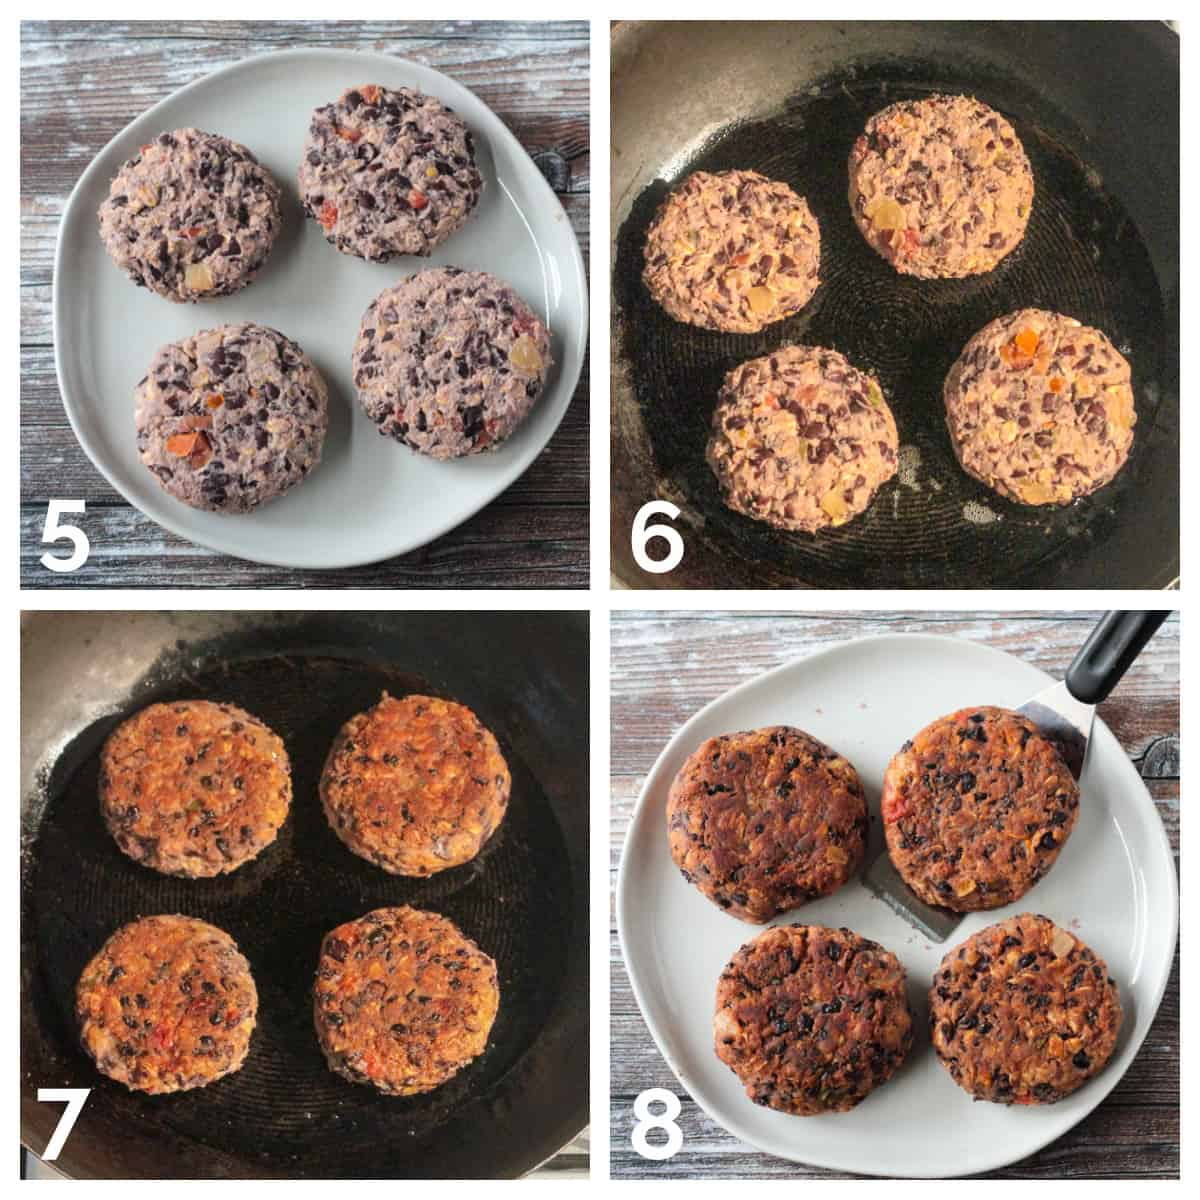 4 photo collage of forming and cooking the patties.